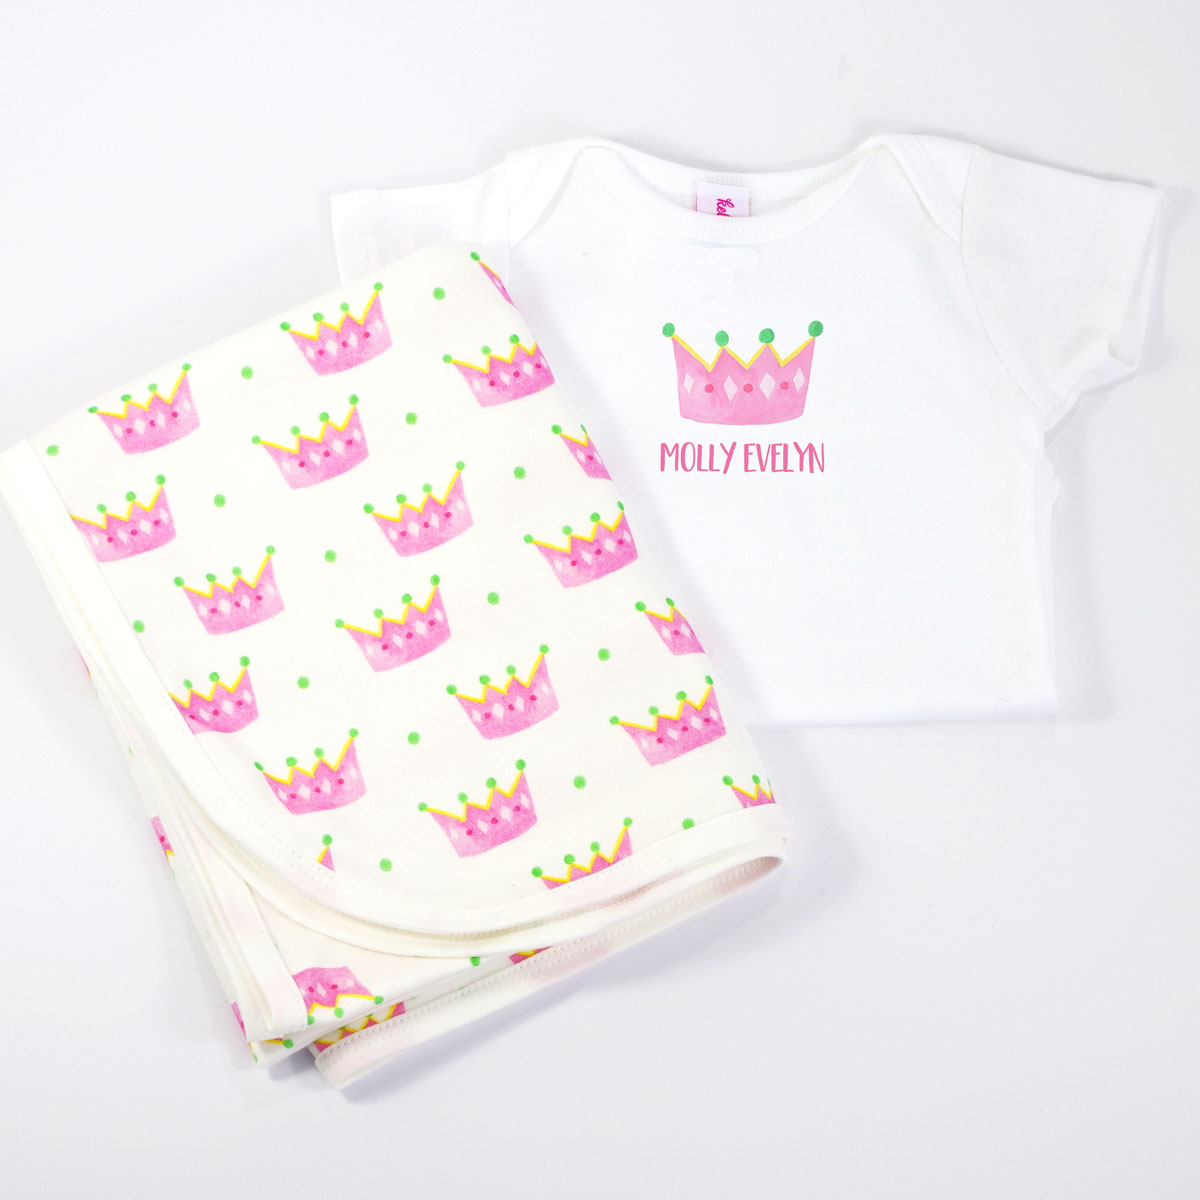 Princess Personalized Onesie and Coordinating Blanket for Baby